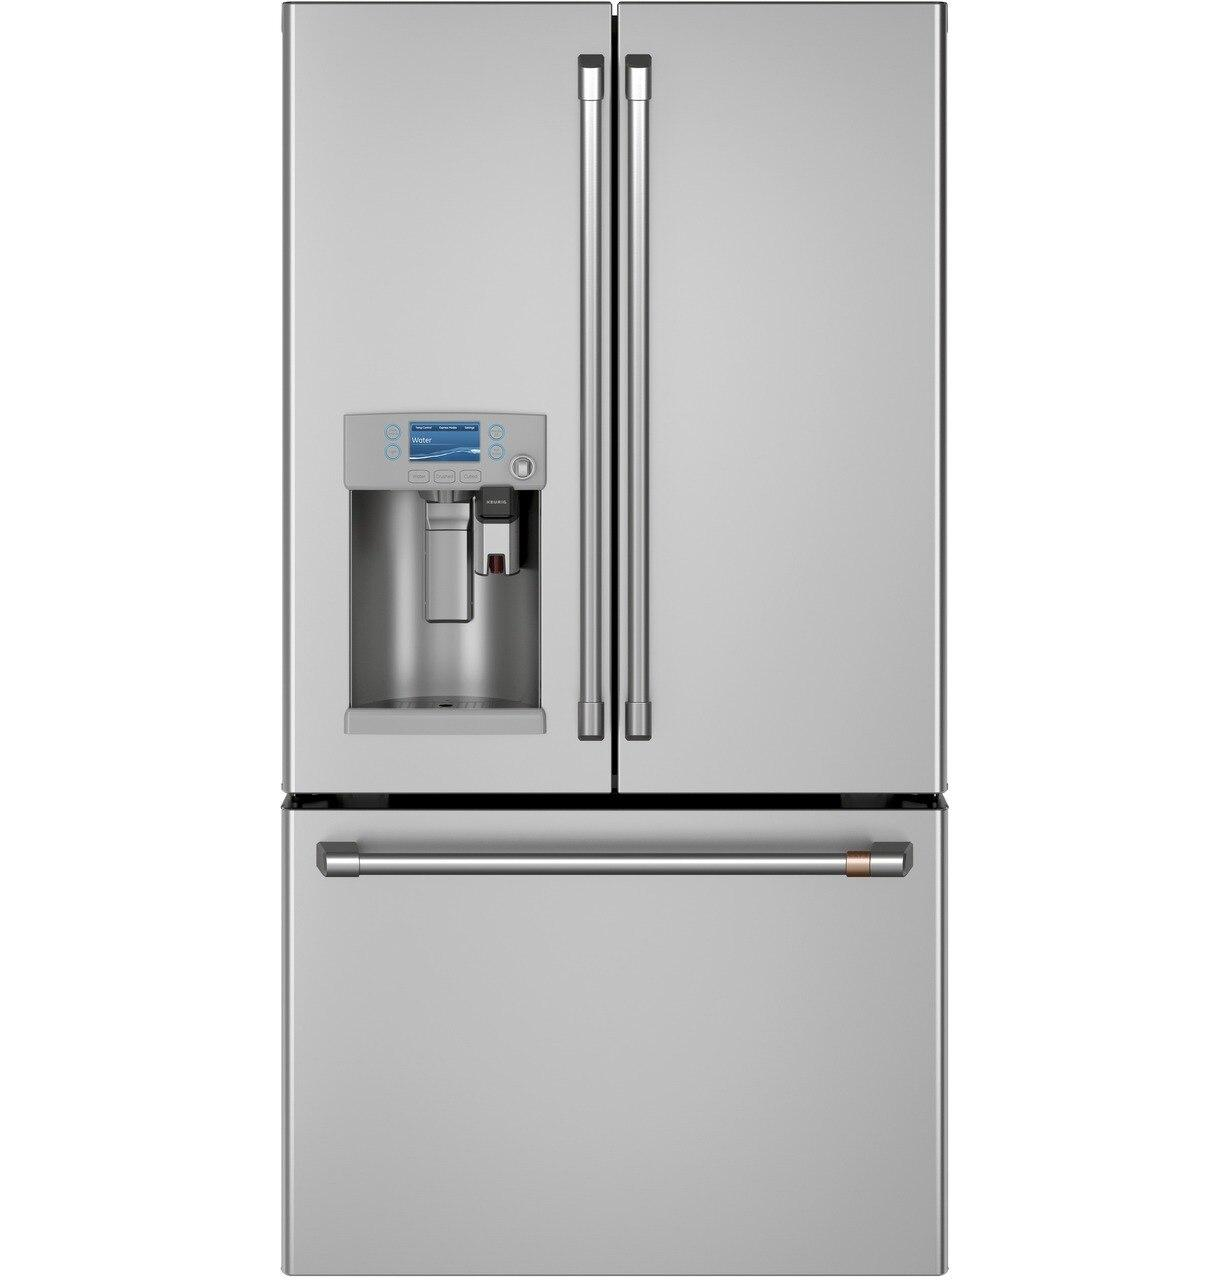 Cafe AppliancesCaf(eback) Energy Star(r) 27.8 Cu. Ft. Smart French-Door Refrigerator With Keurig(r) K-Cup(r) Brewing System